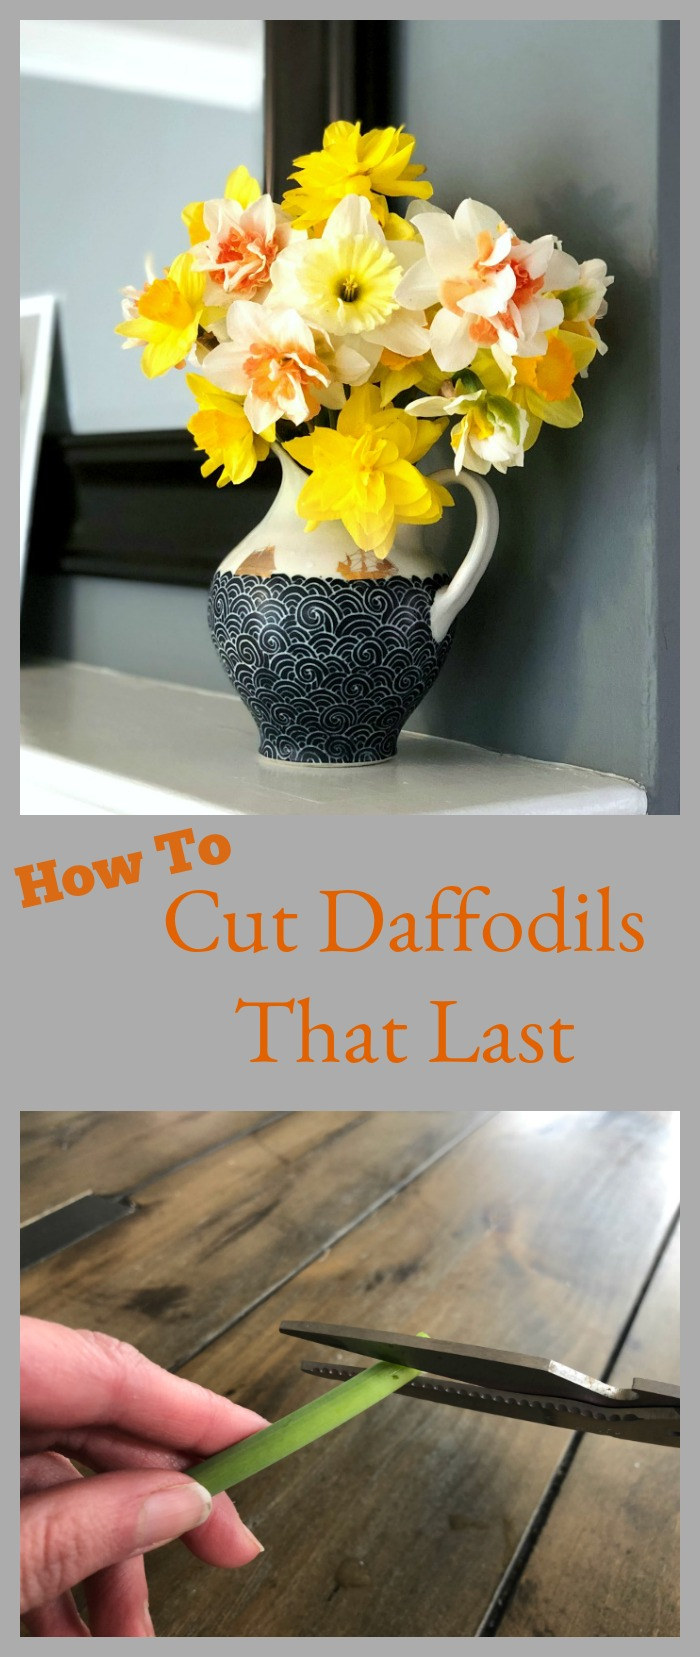 How to cut daffodils to make them last in a vase or flower arrangement